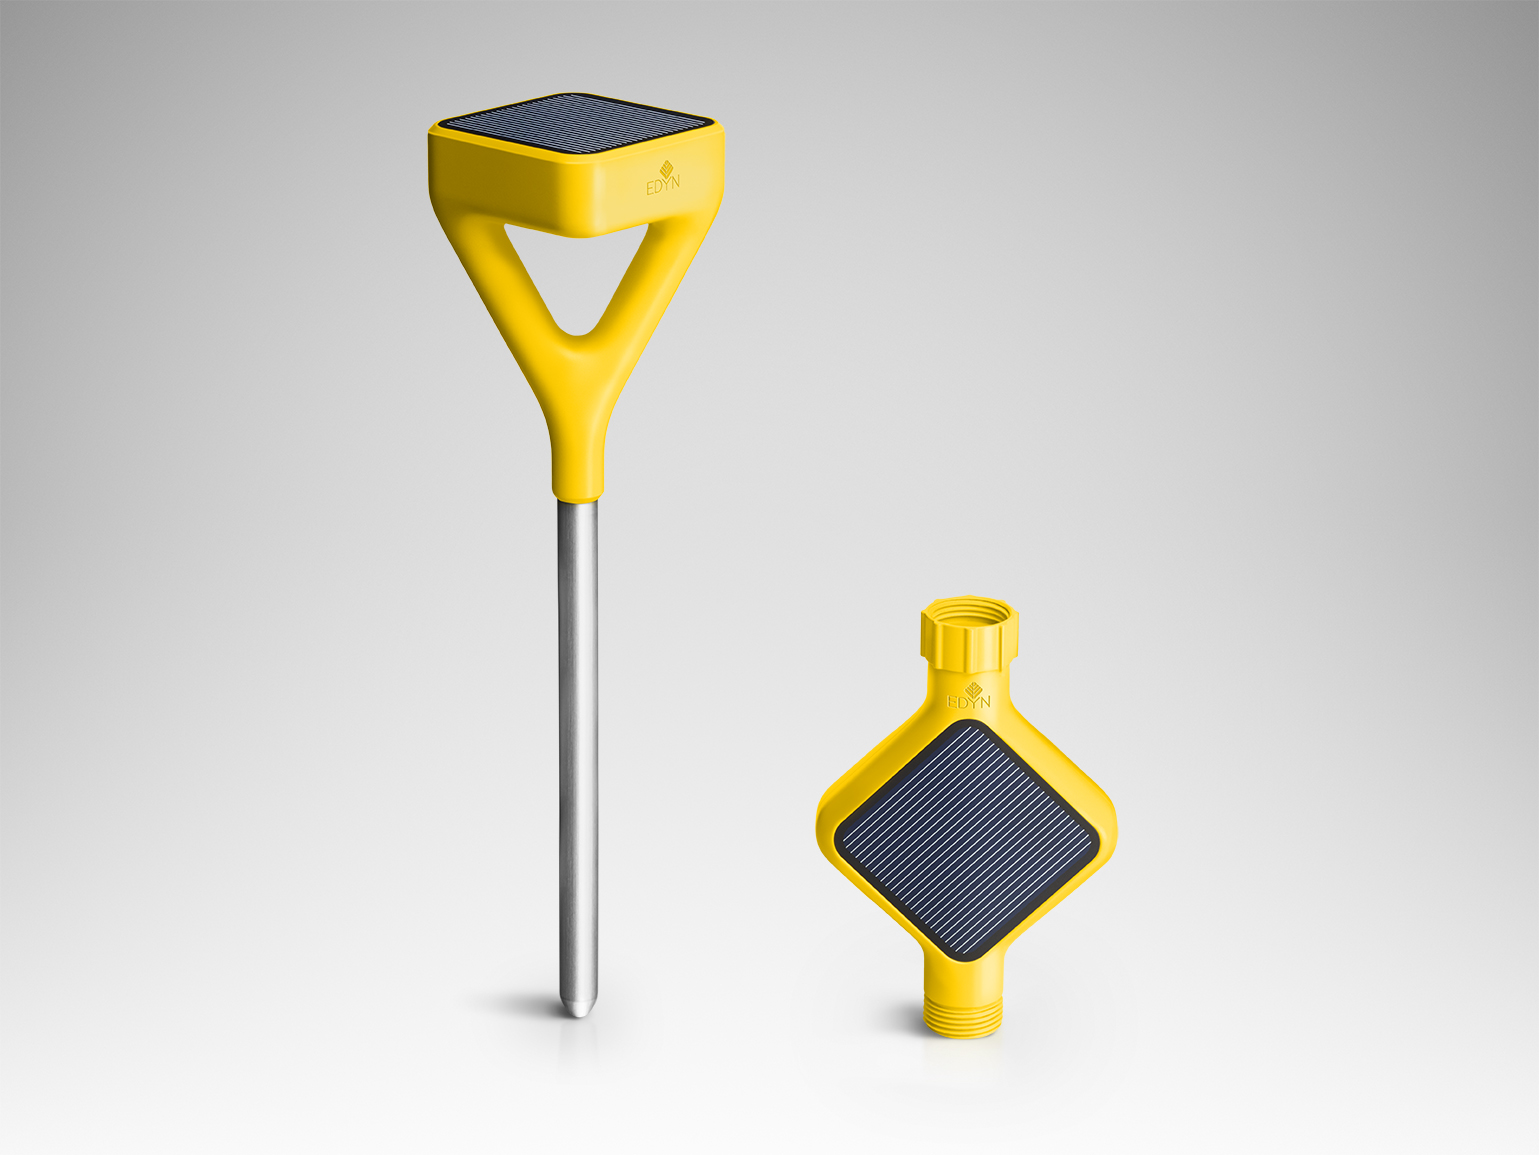 Smart garden devices in yellow